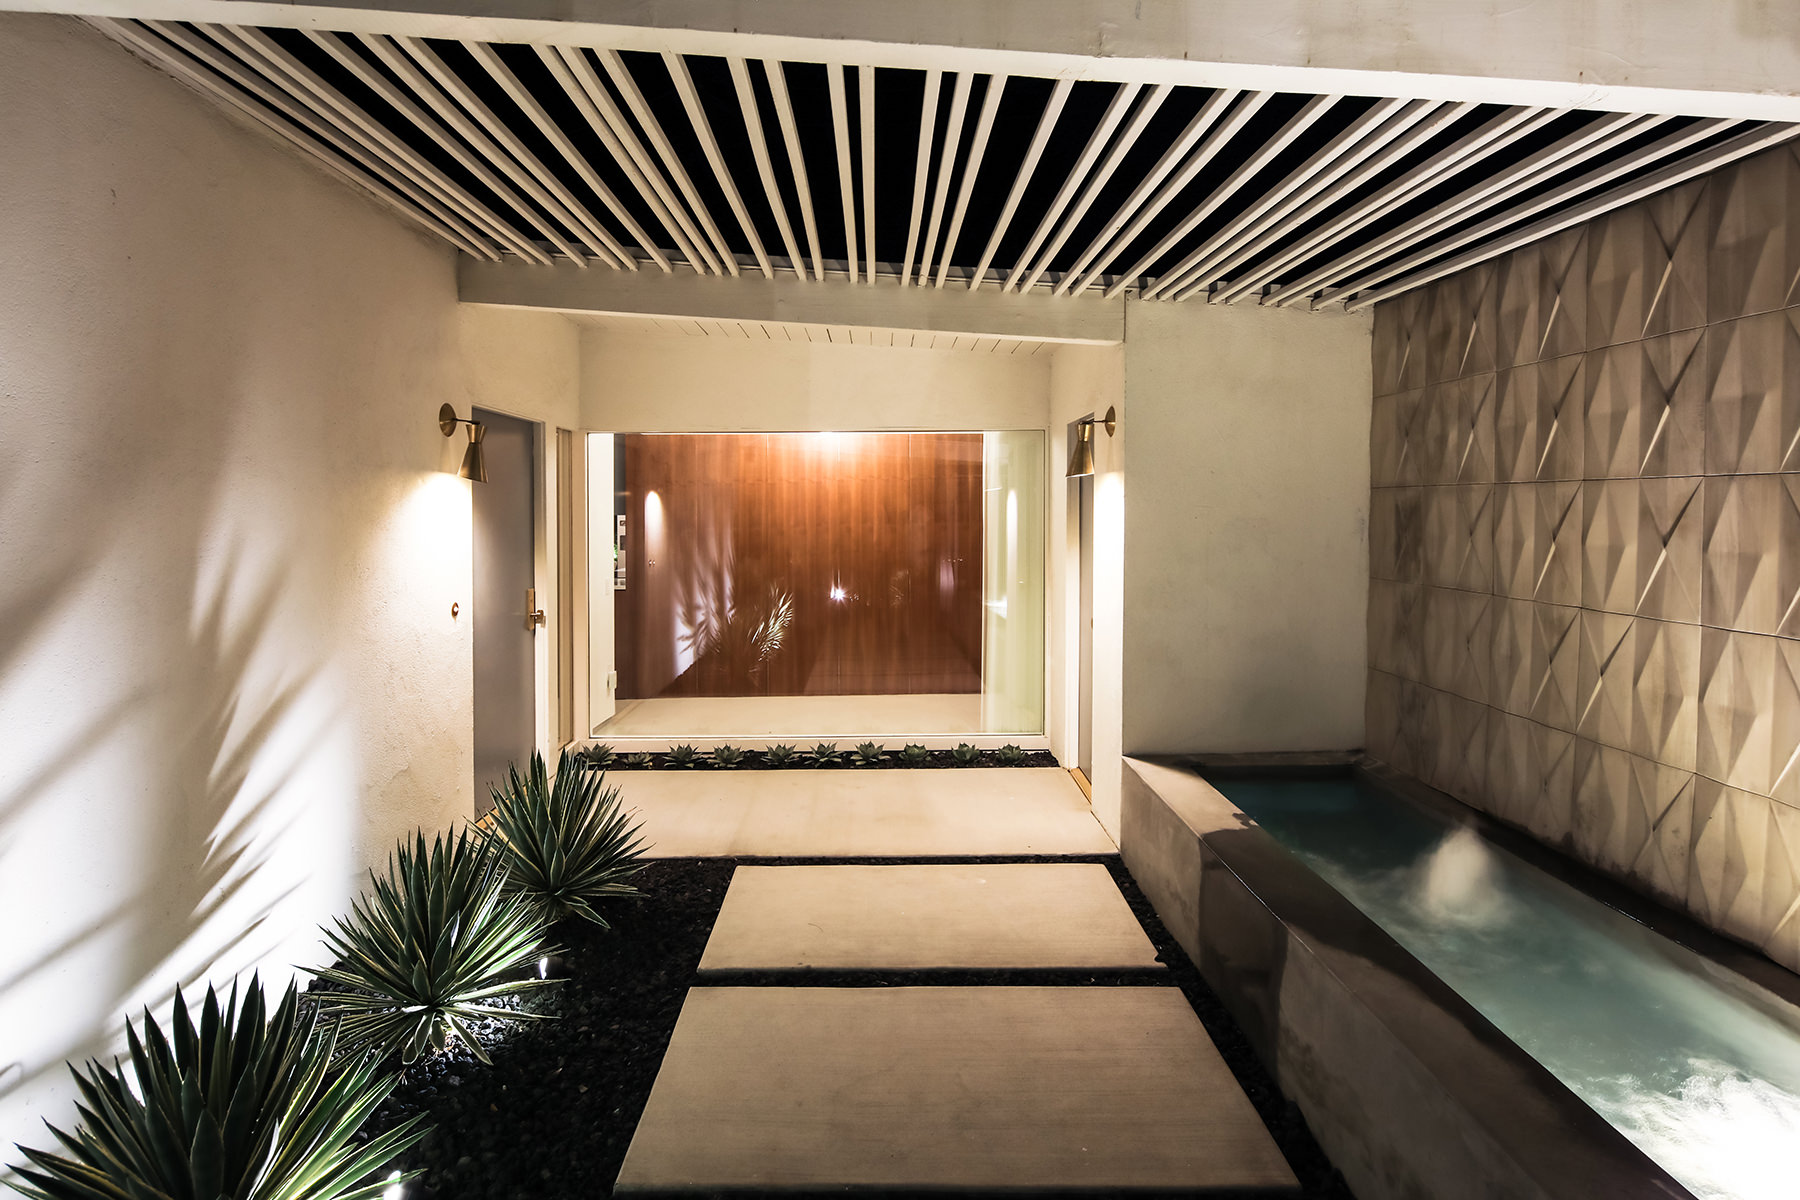 12 EXTERIOR COURTYARD NIGHT AFTER